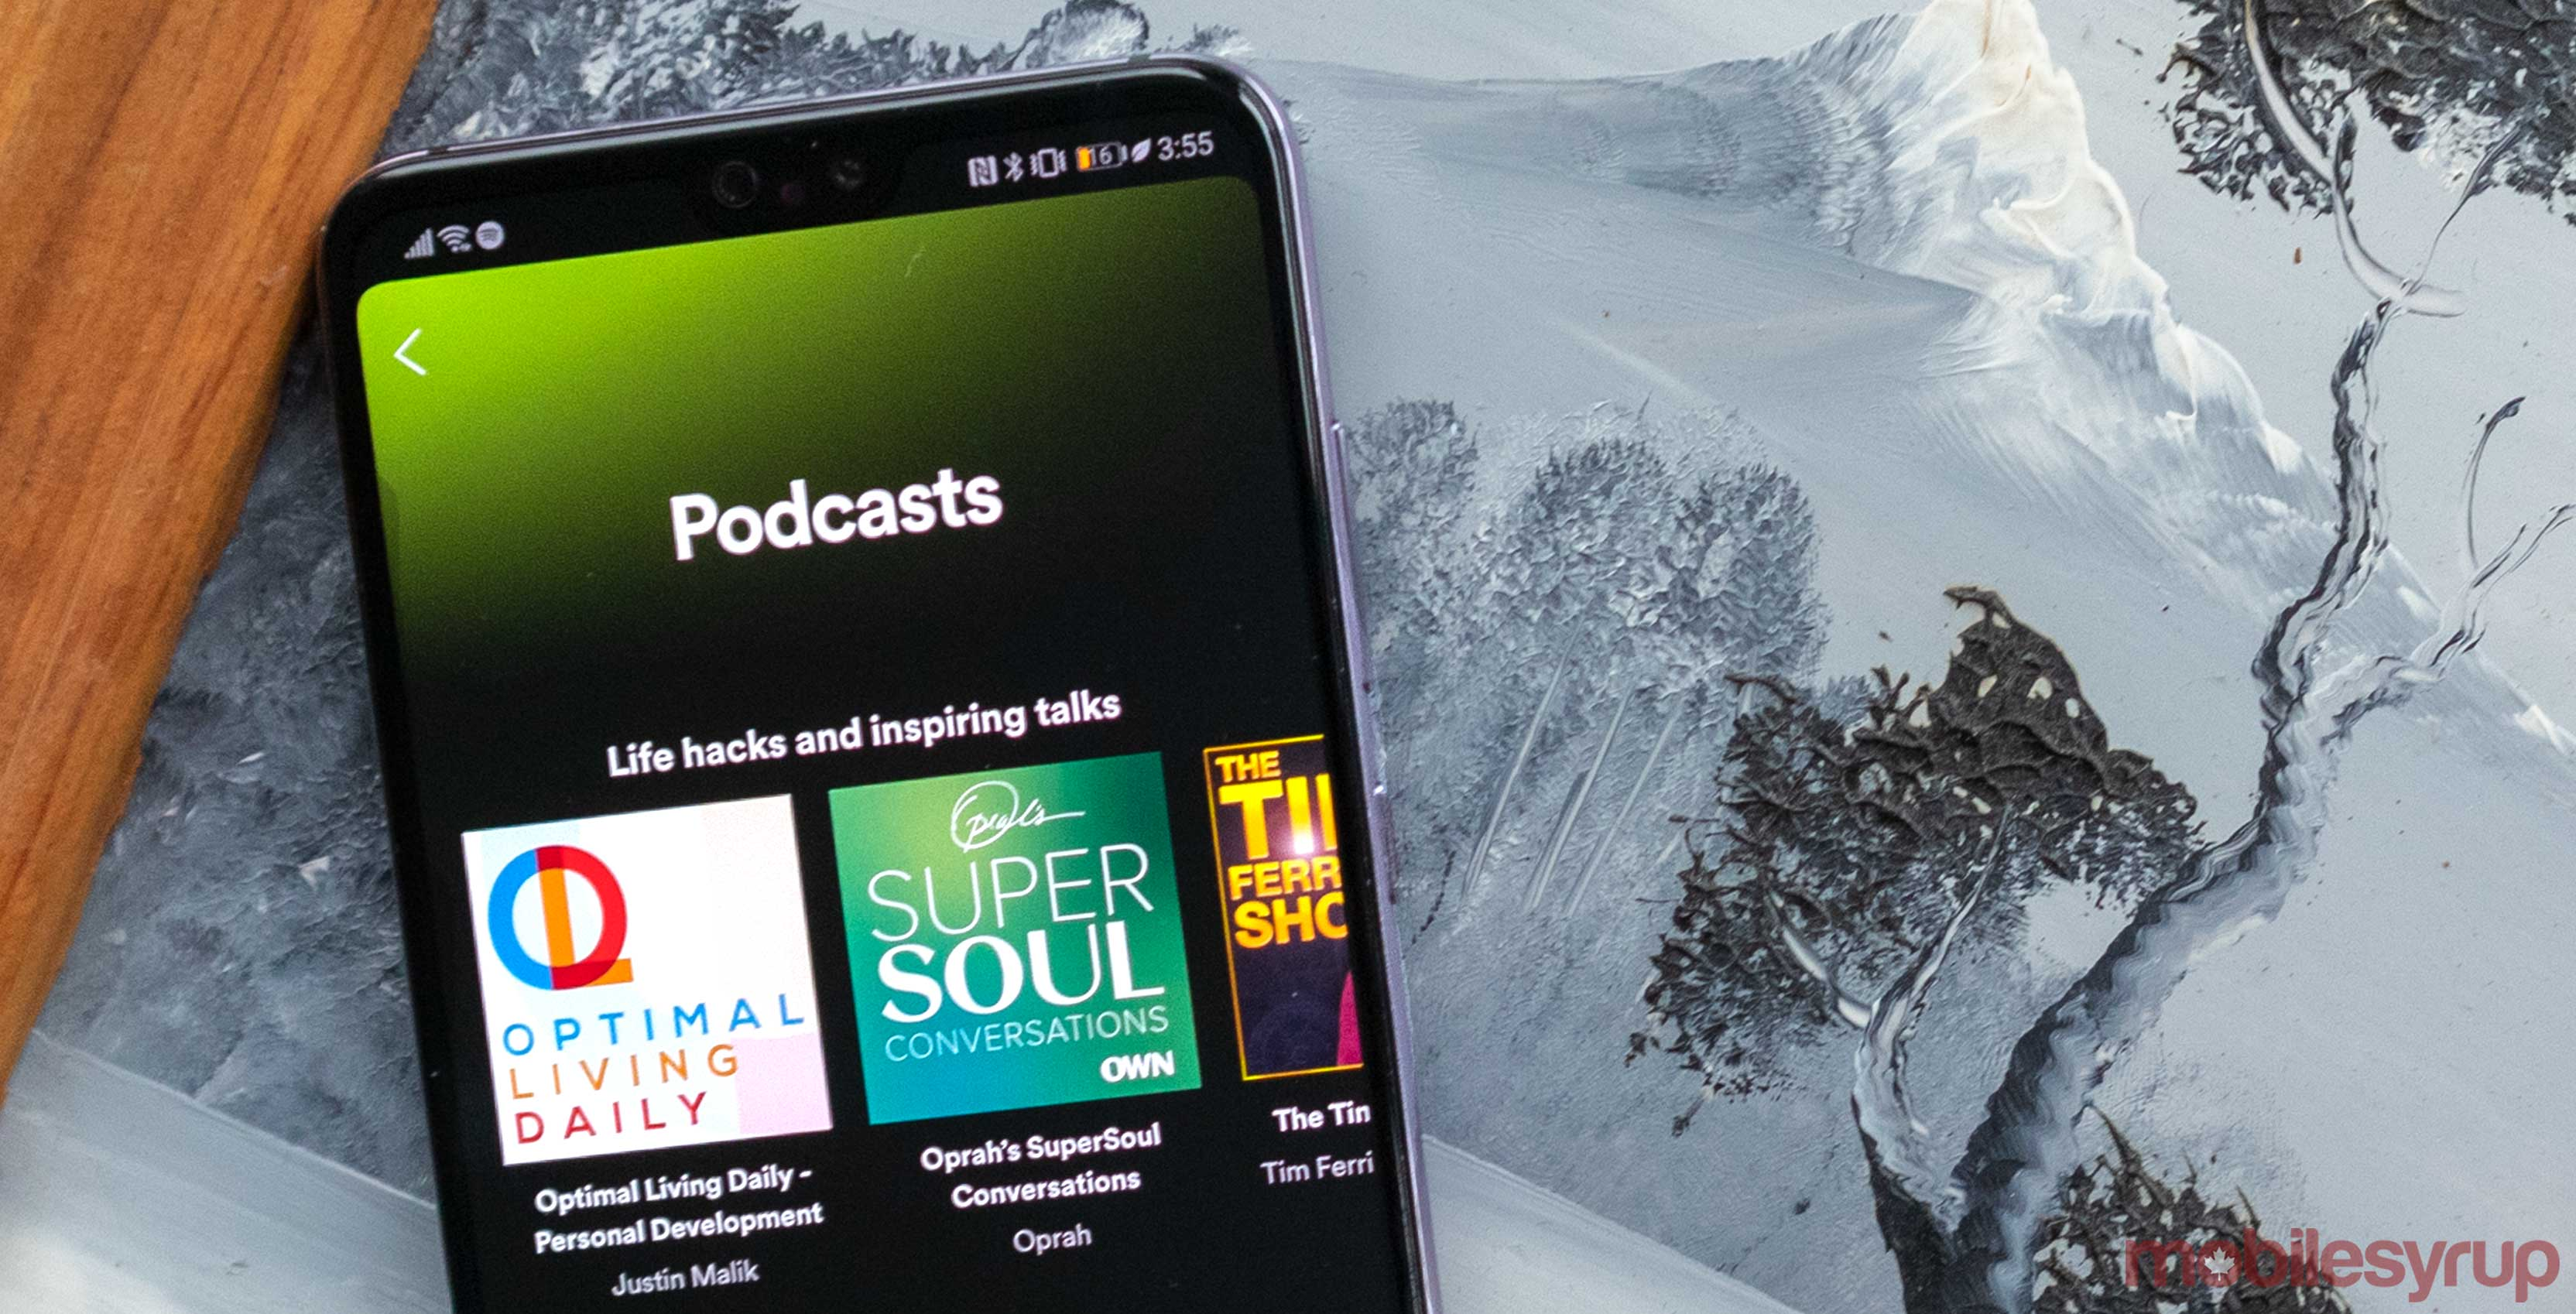 Spotify for Podcasters out of beta, offers first-party data analytics for creators